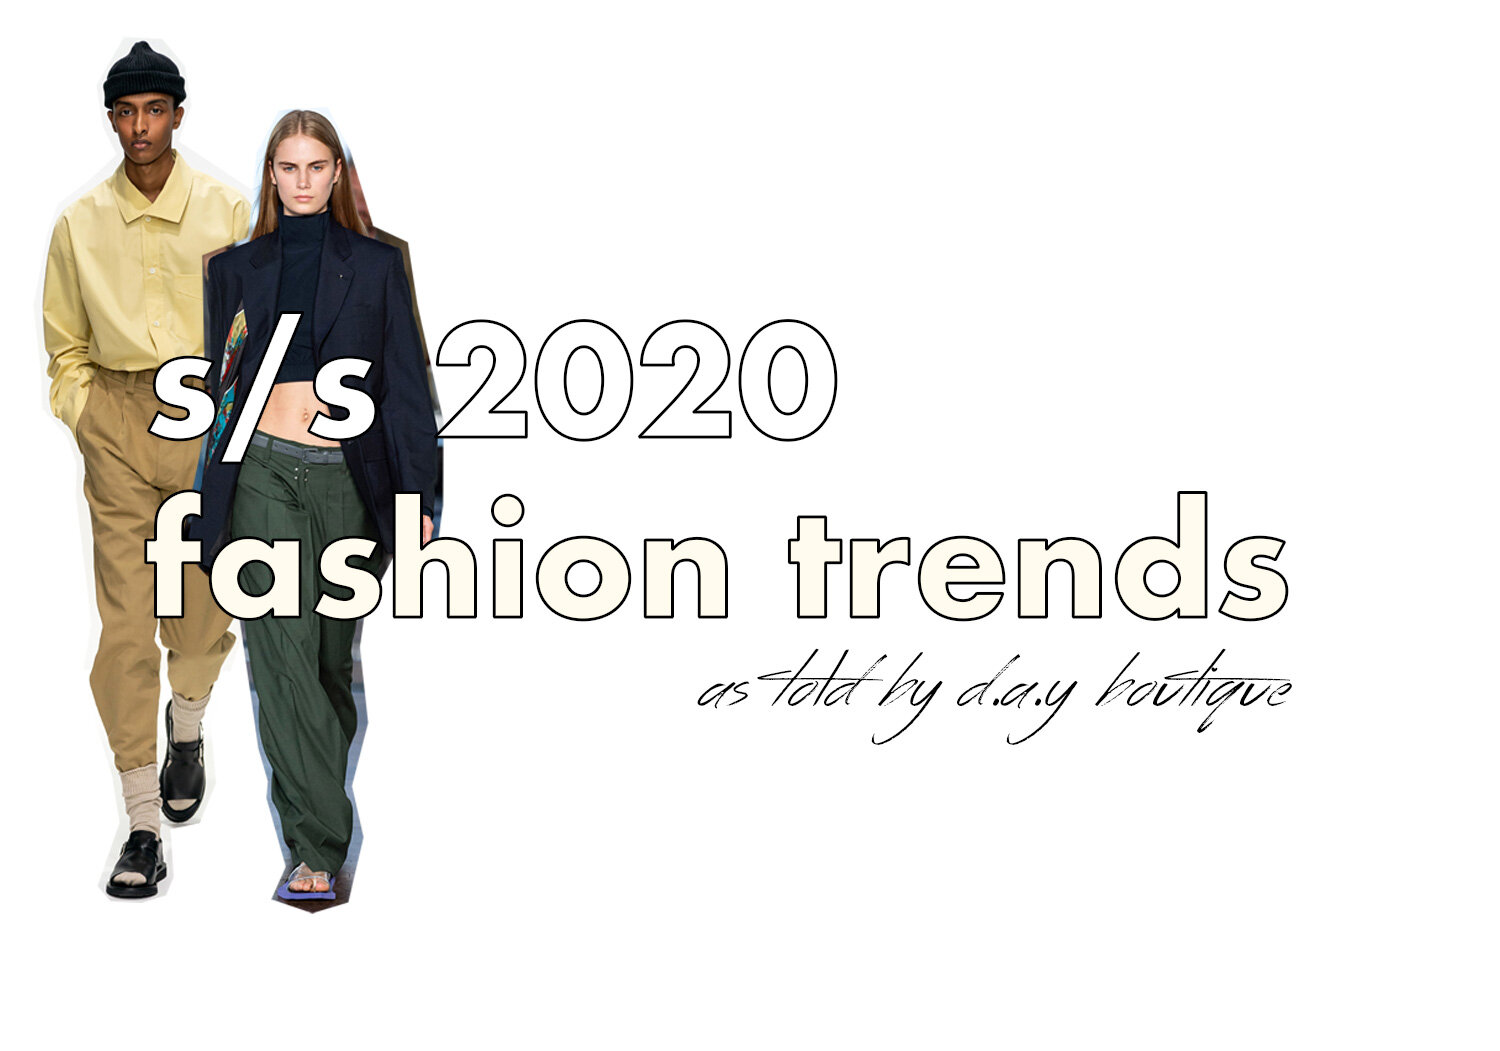 ss2020 fashion trends